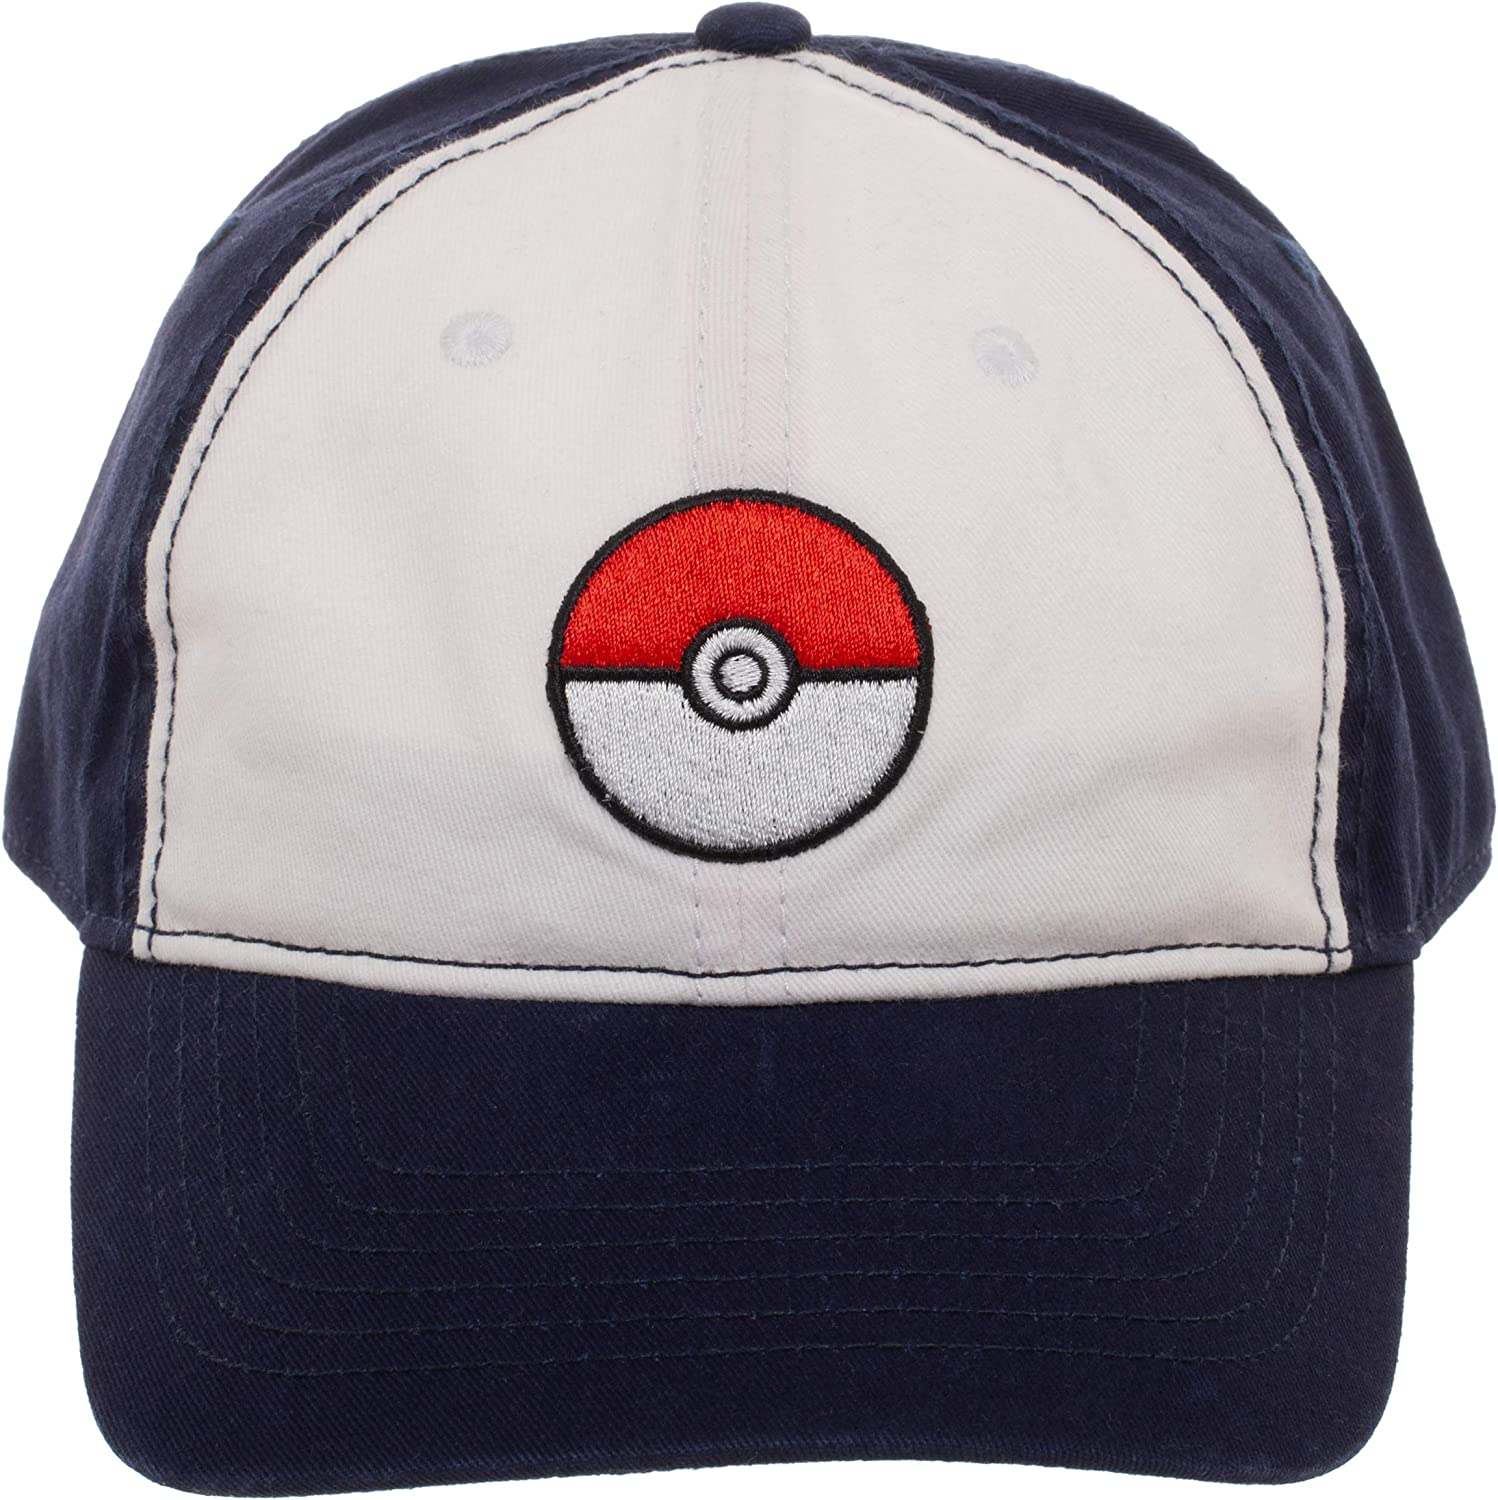 Popular products Pokemon Pokeball Adjustable Hat SALENEW very popular! Bill Pre-Curved with